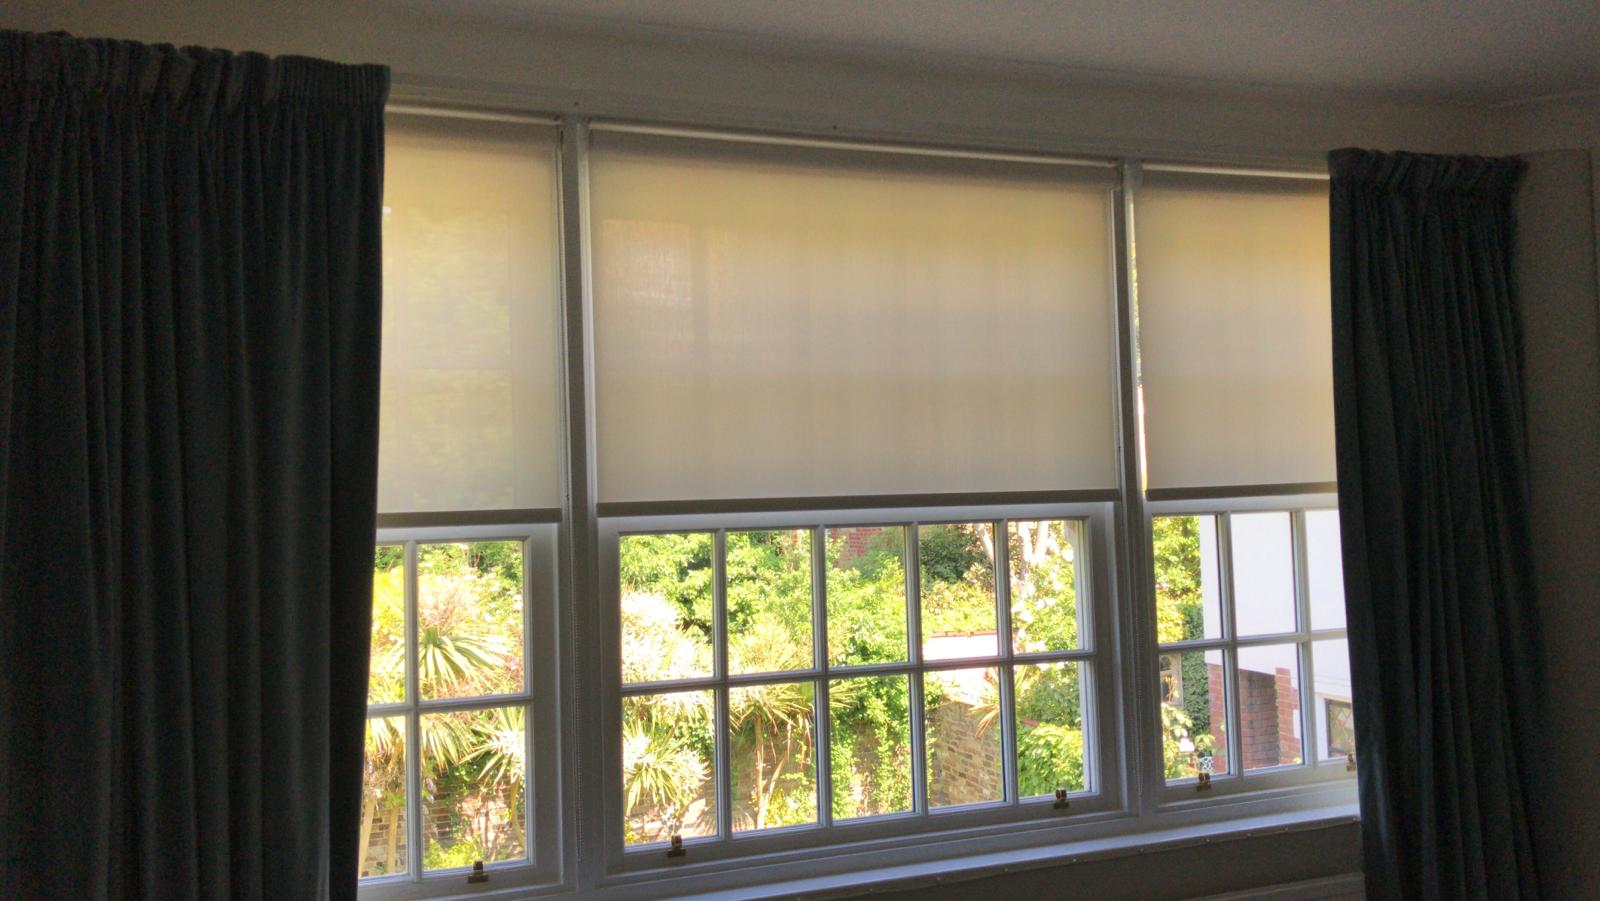 Home Furniture Diy Schools Offices Roller Blinds Made 2 Measure In Commercial Contract Fabrics Gronn Com Br